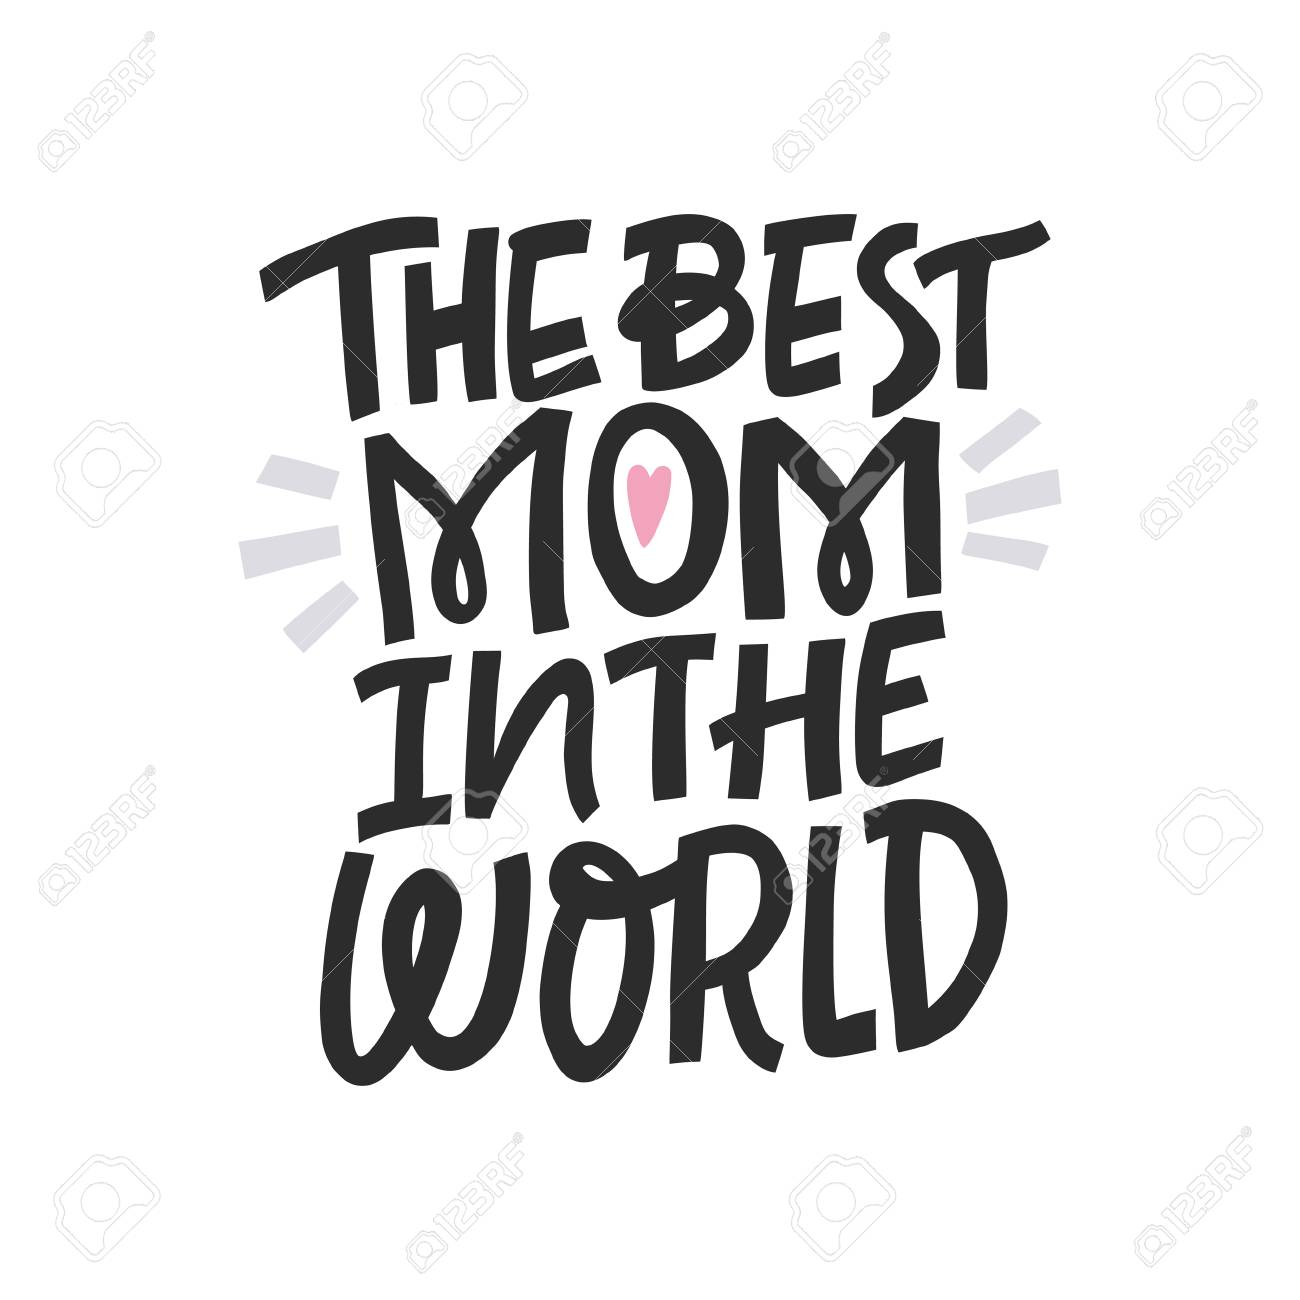 The best mom in the world greeting card for mothers day hand drawn lettering